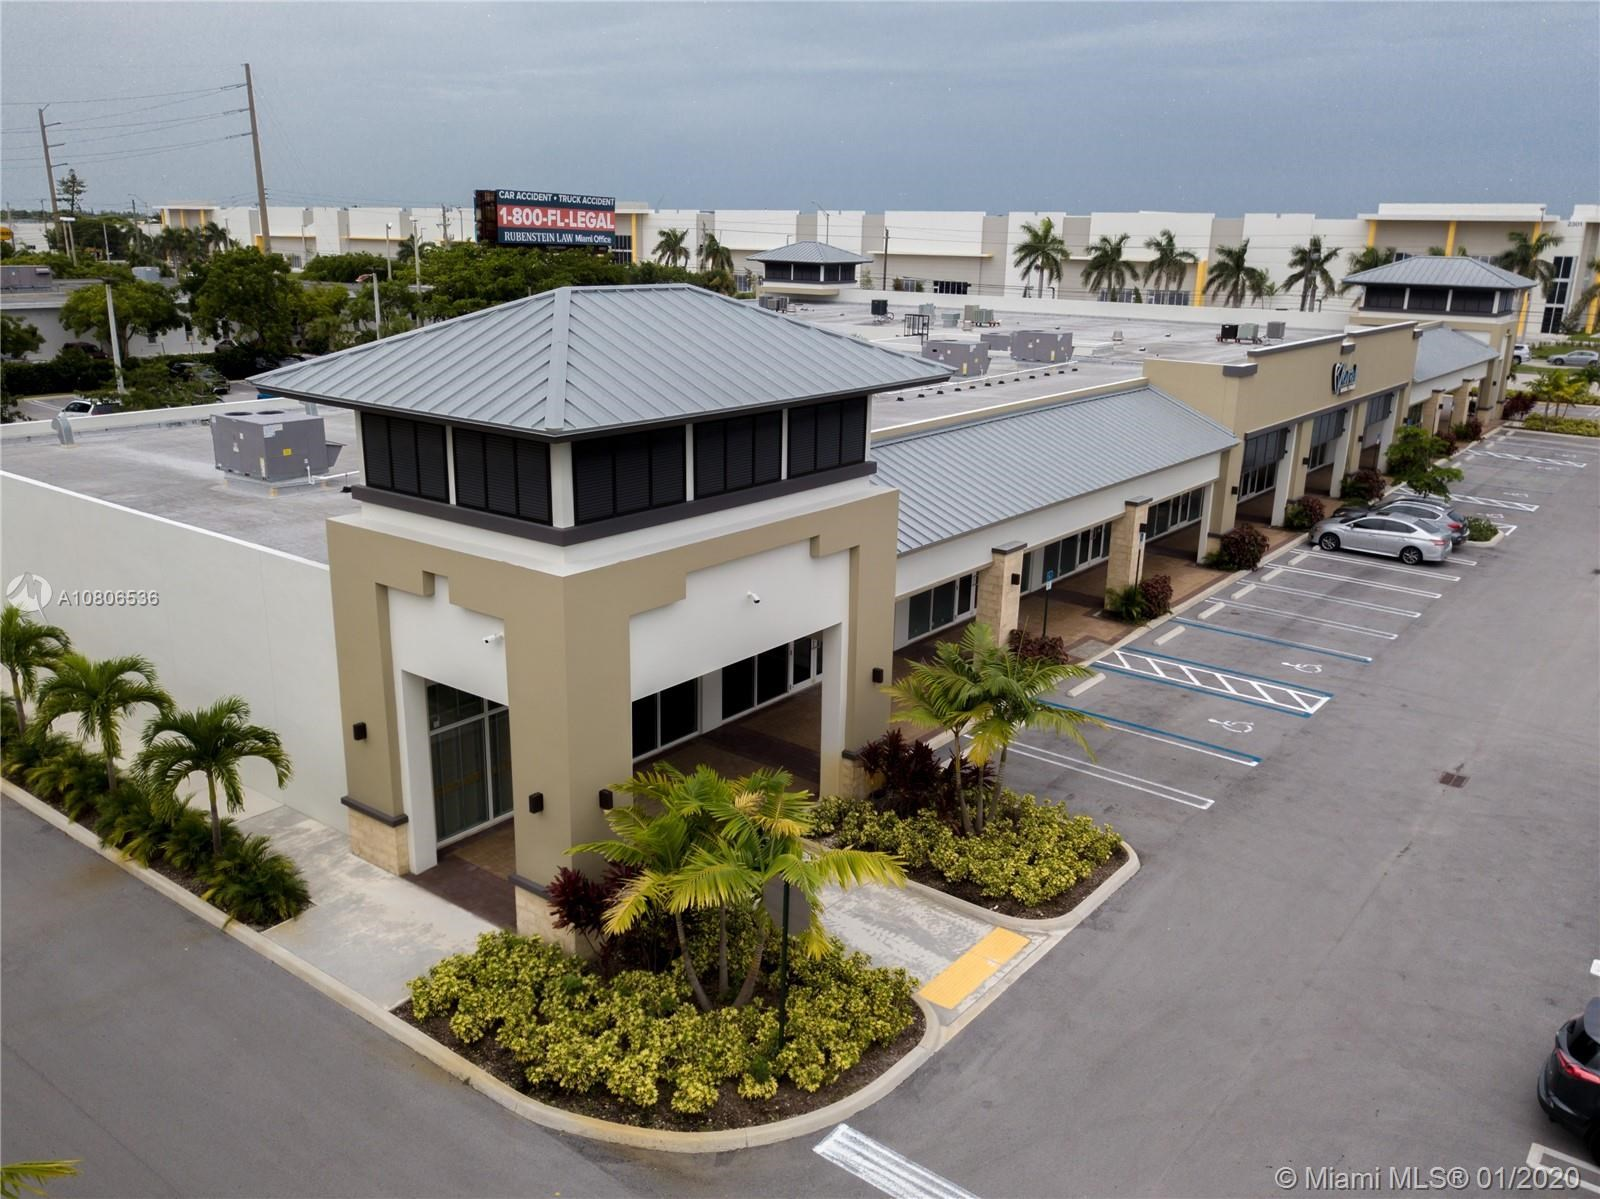 2110 NW 107th Ave, Doral, FL 33172